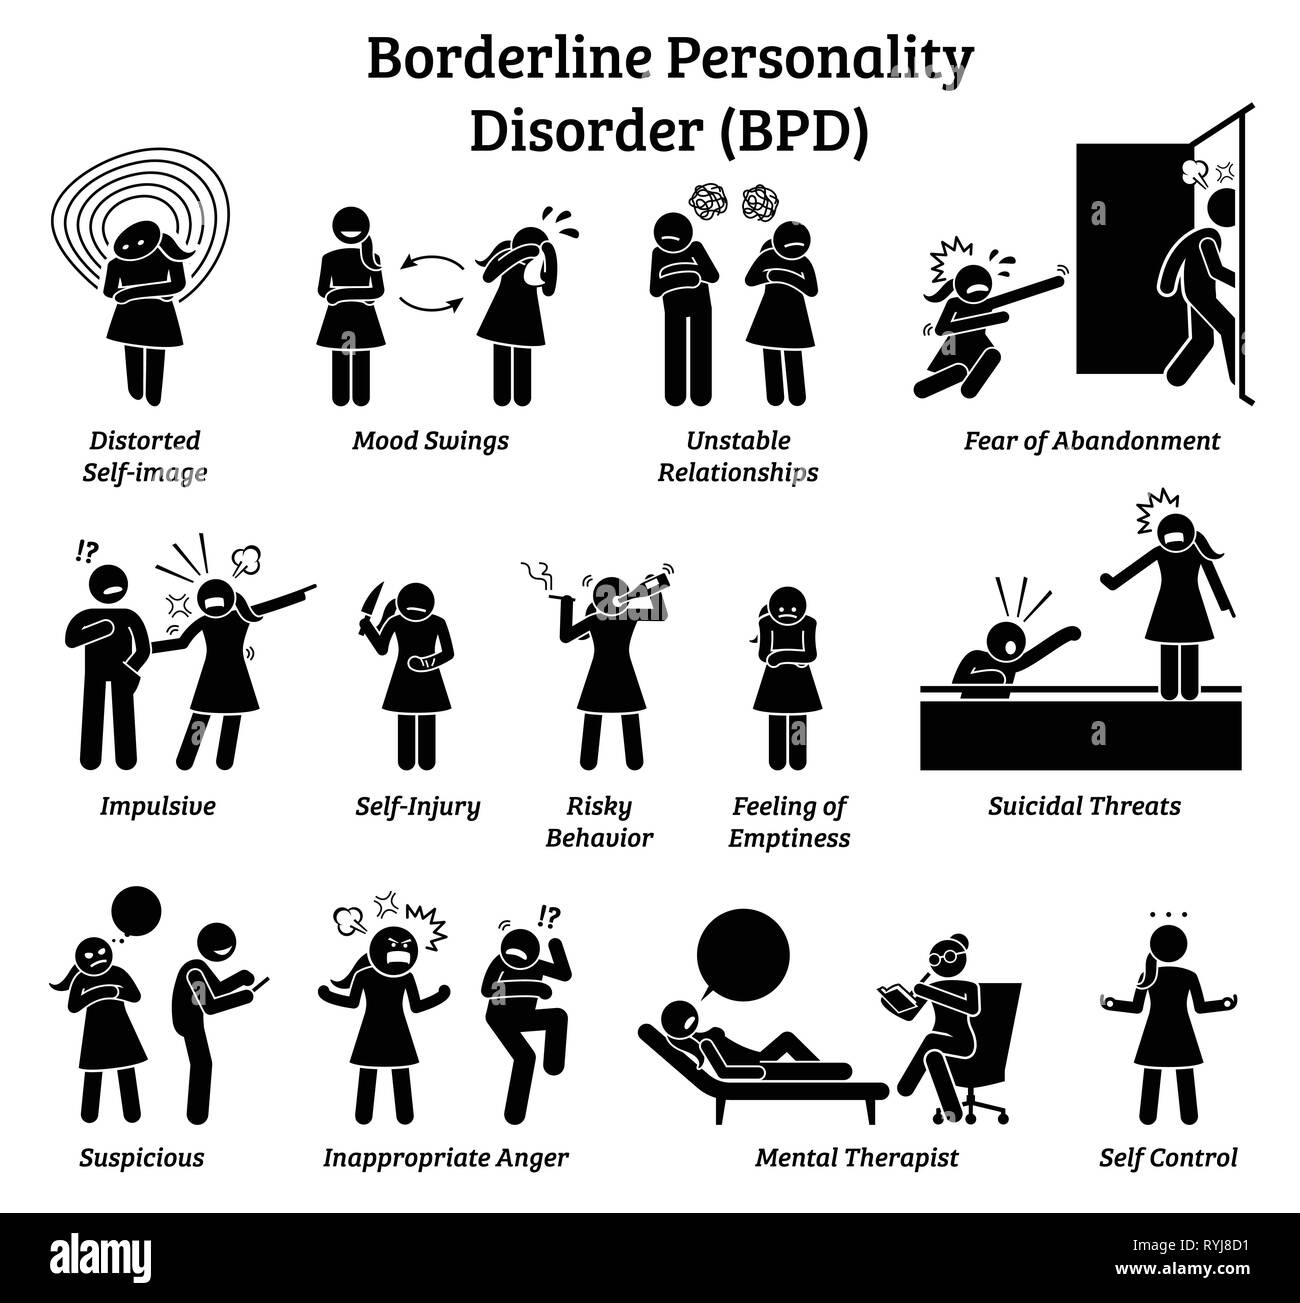 Borderline personality disorder BPD signs and symptoms. Illustrations depict a woman with mental health disorder having difficulty in life and relatio - Stock Image